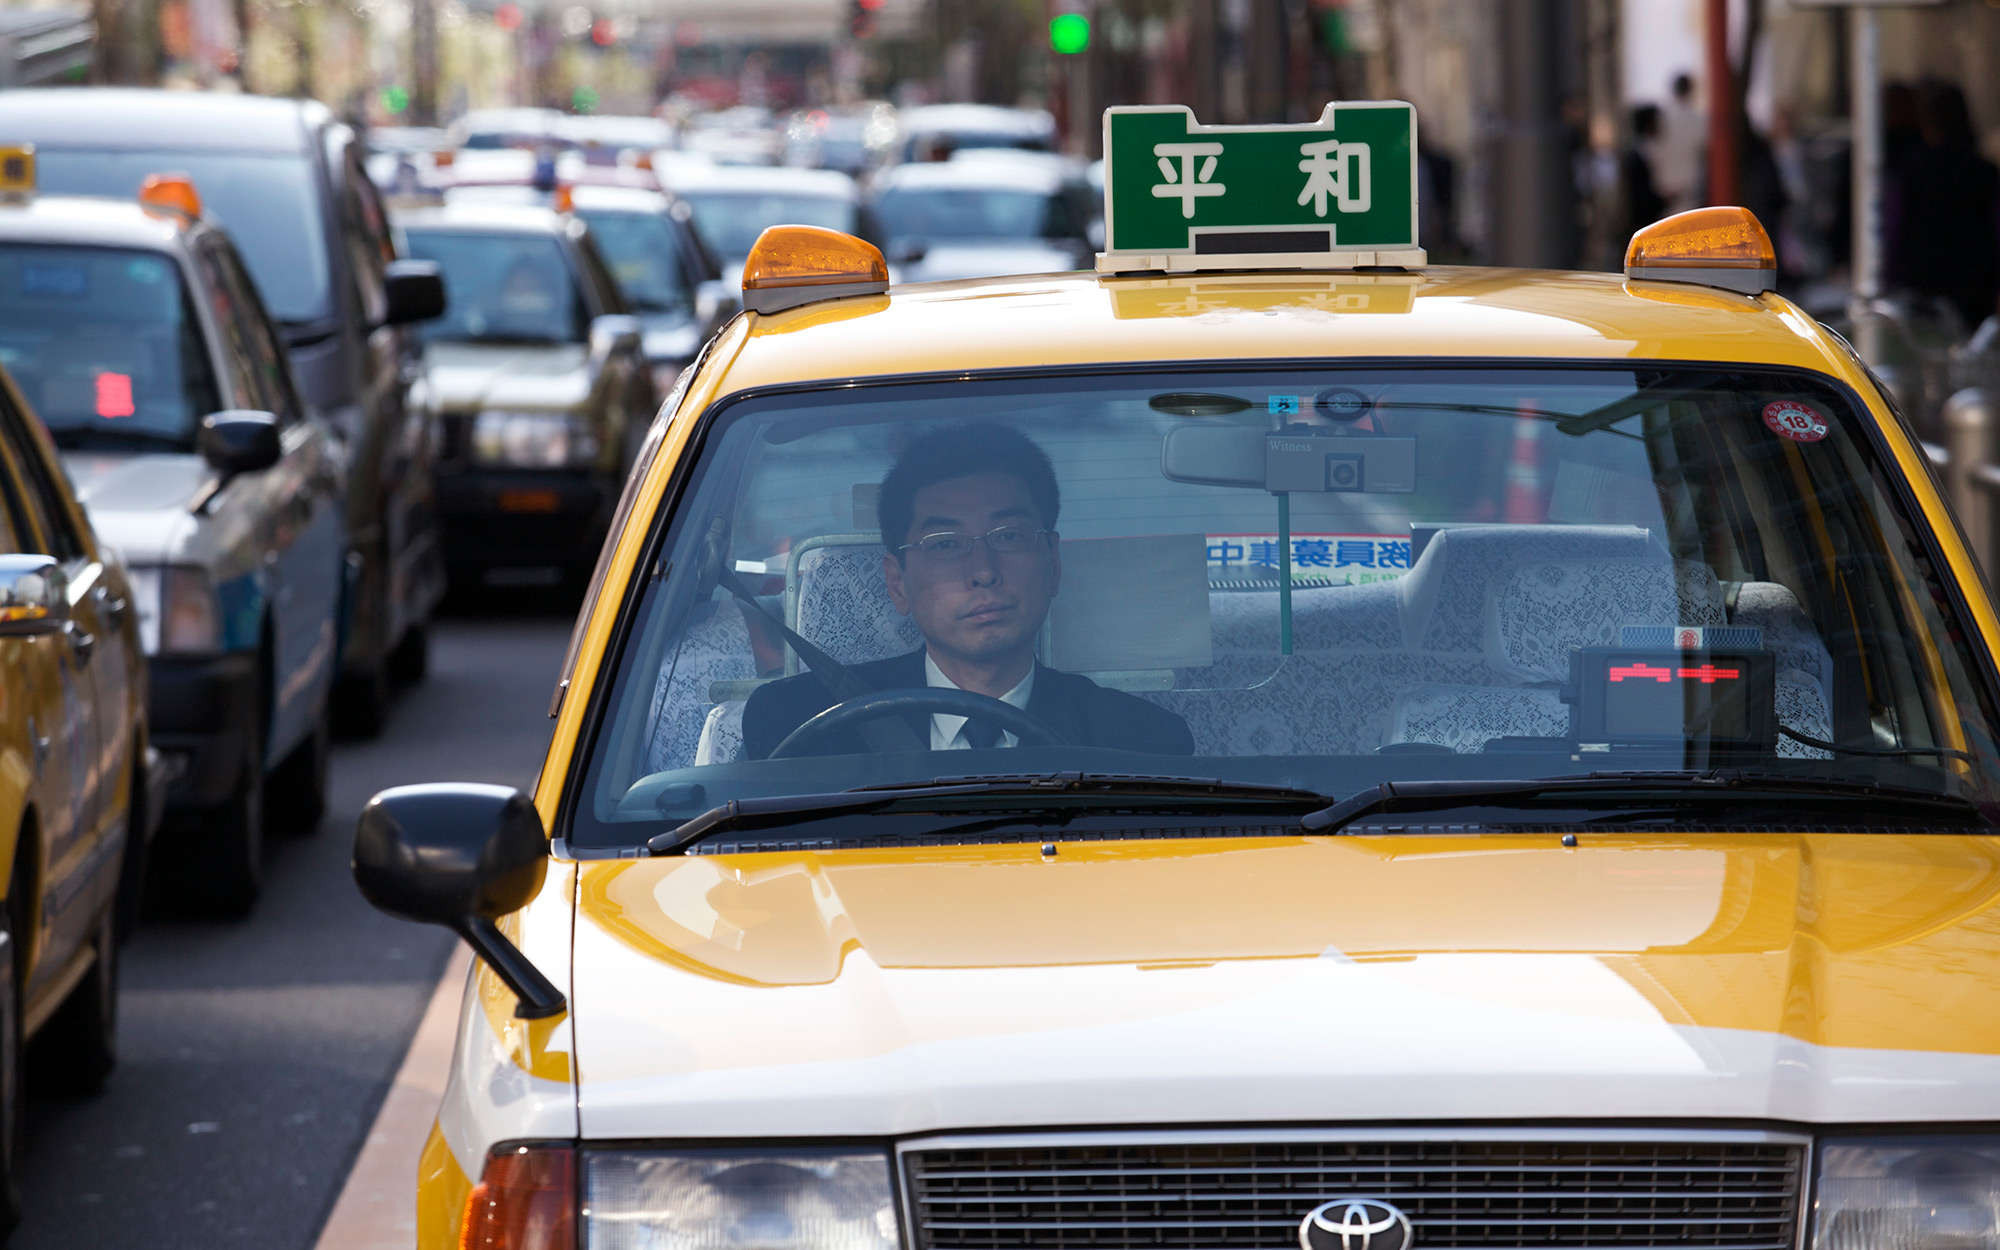 Taxi Drivers in Japan Claim They've Had Ghost Passengers